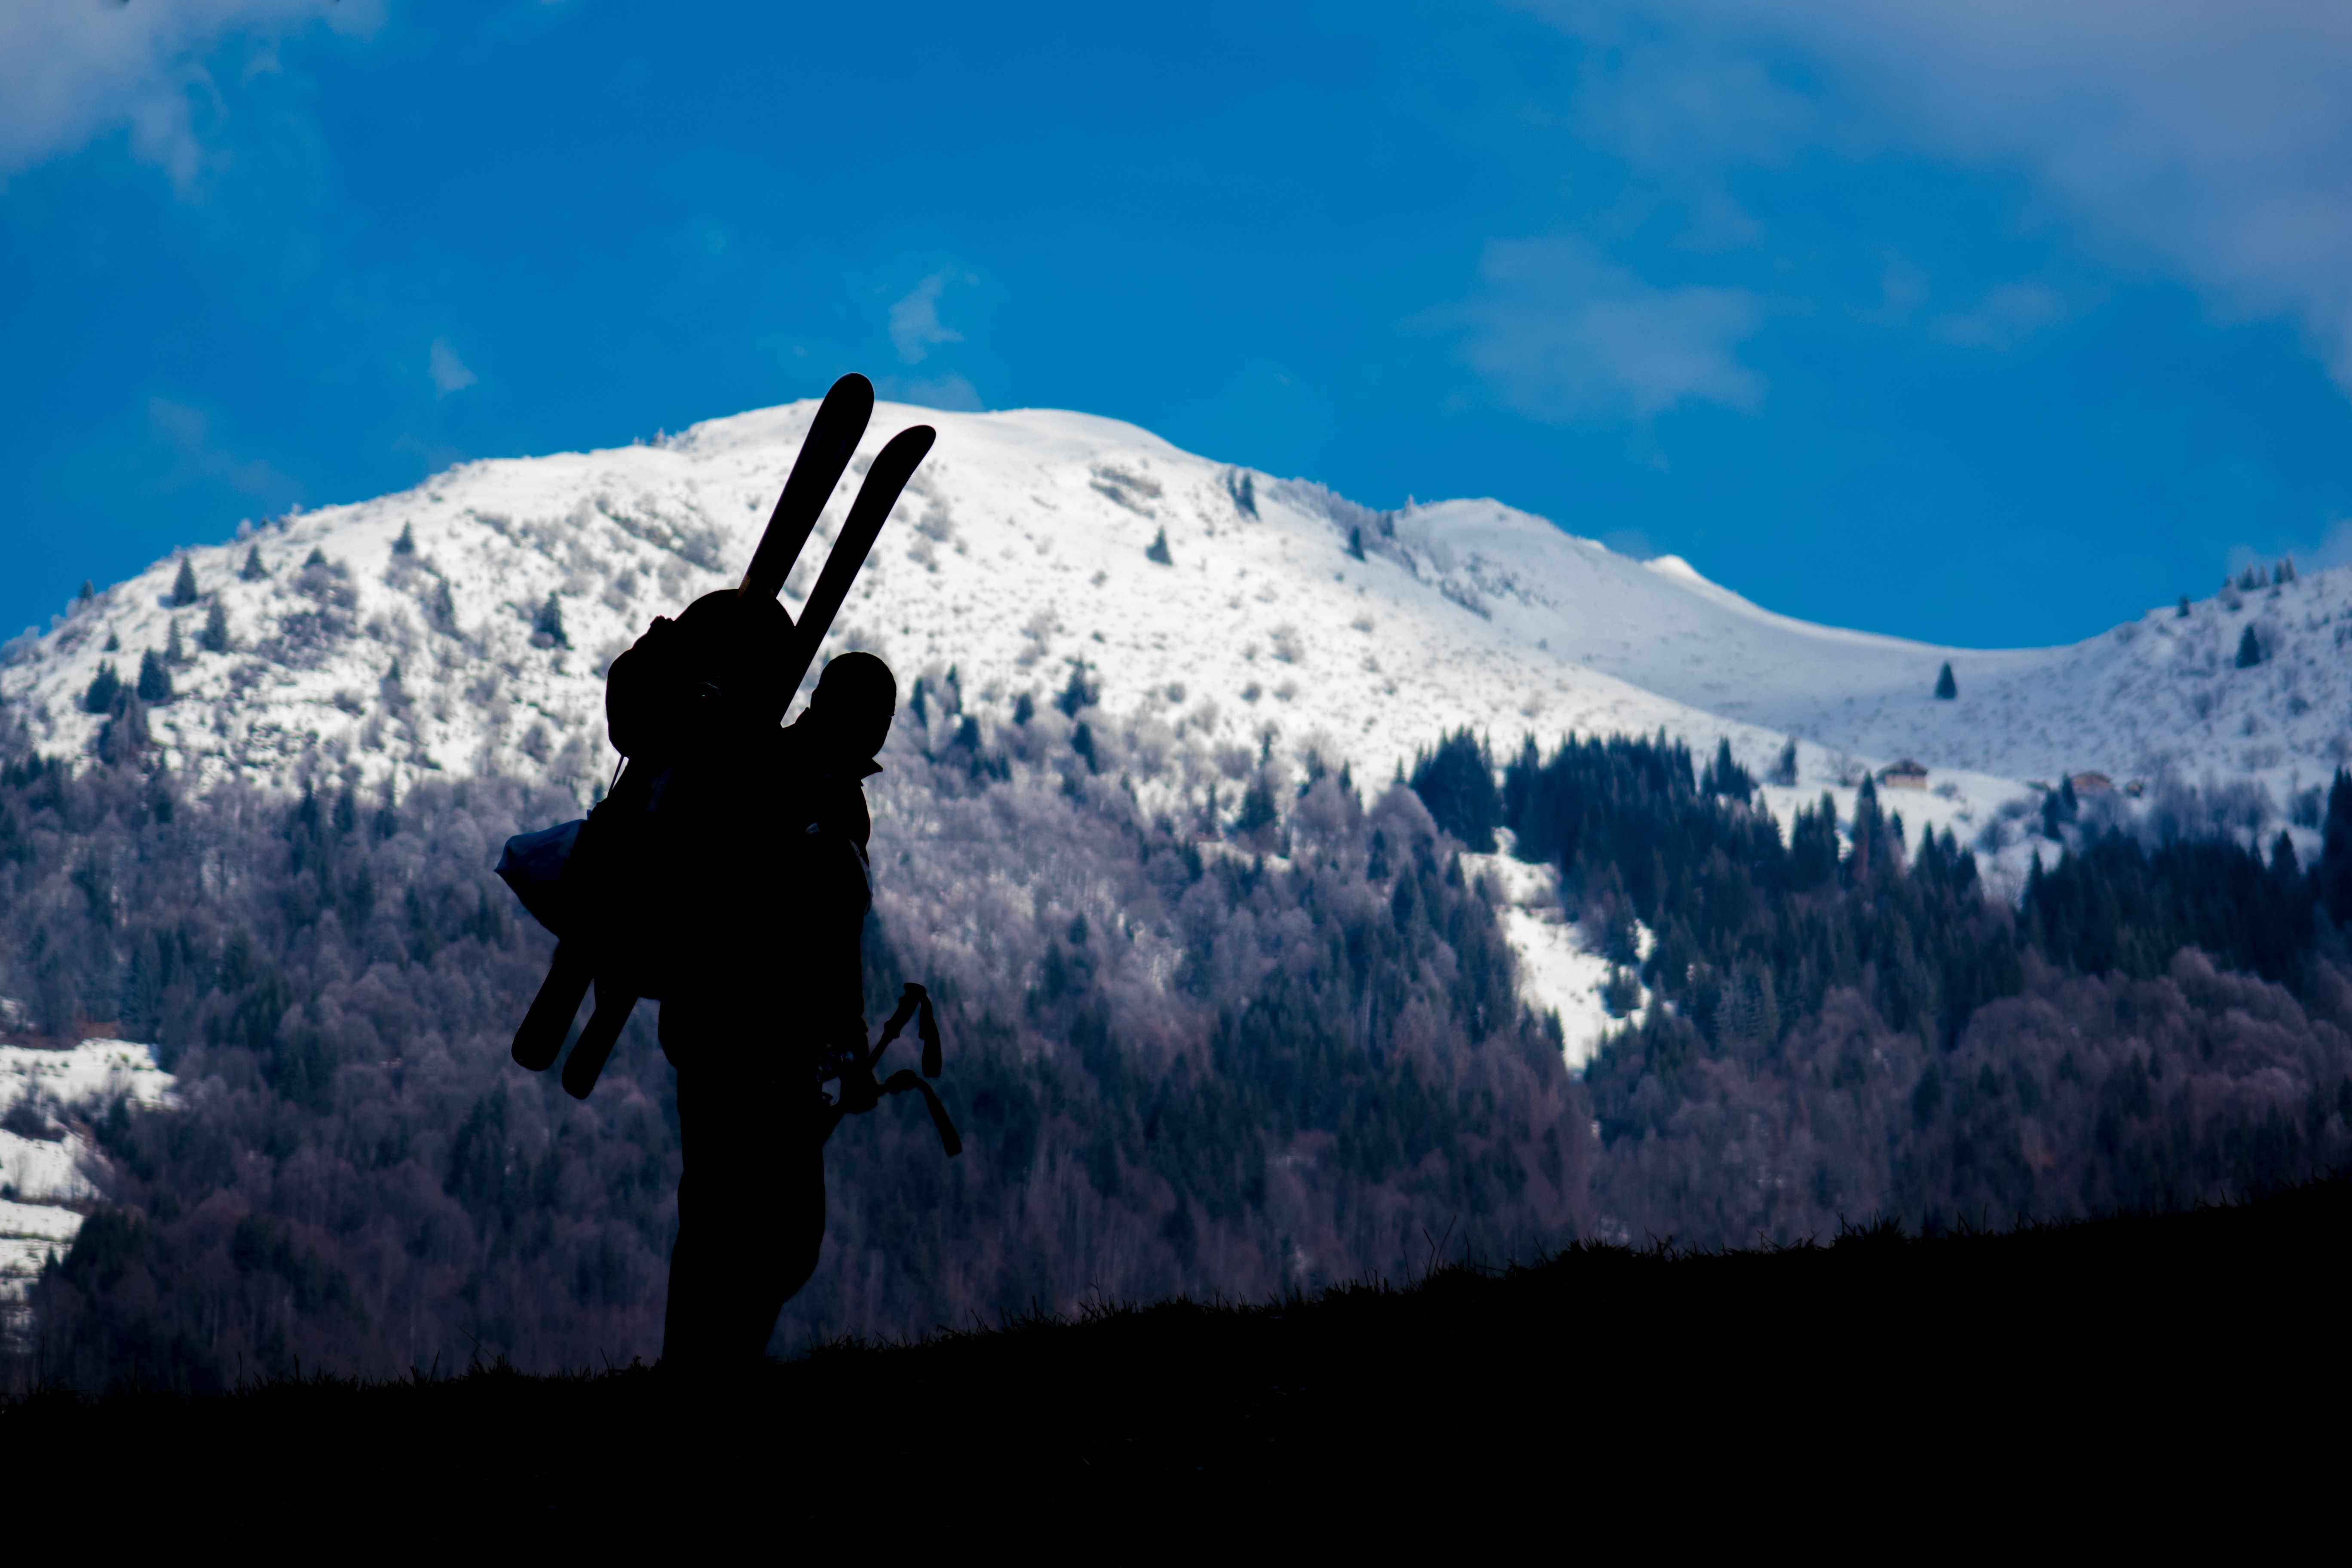 Silhouette of a skier ascending a snowy blue mountain landscape